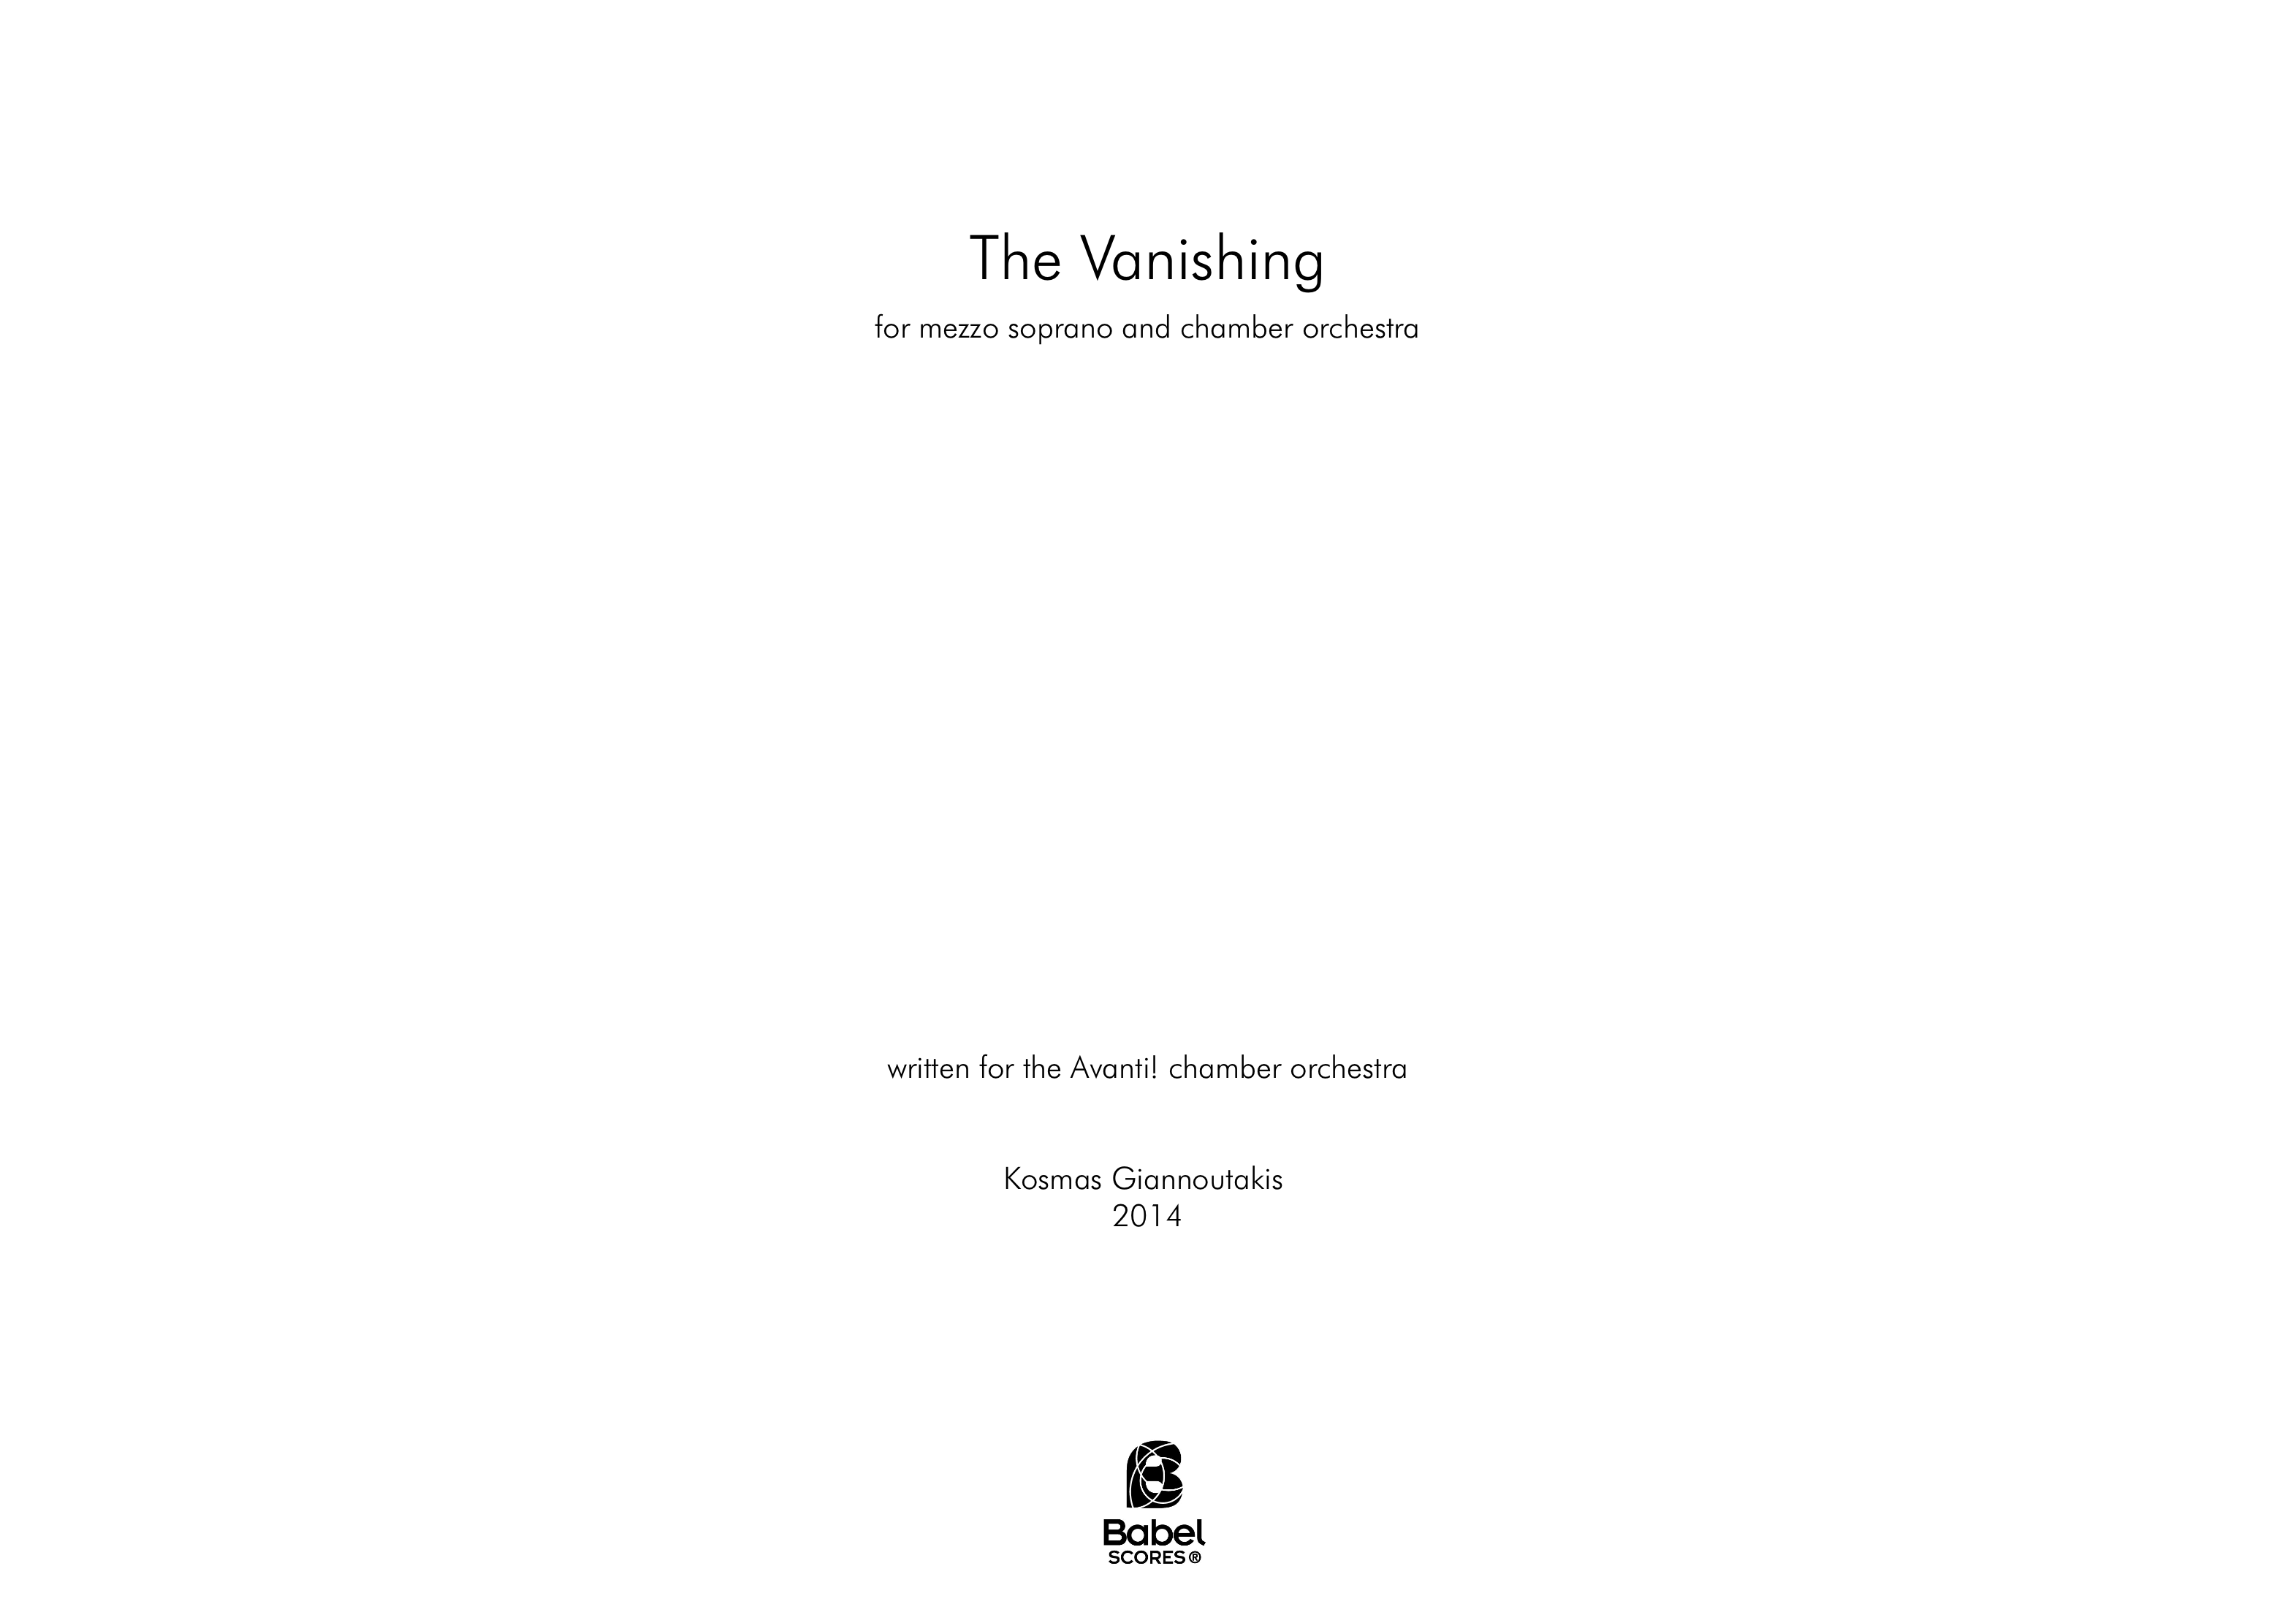 The Vanishing A3 z